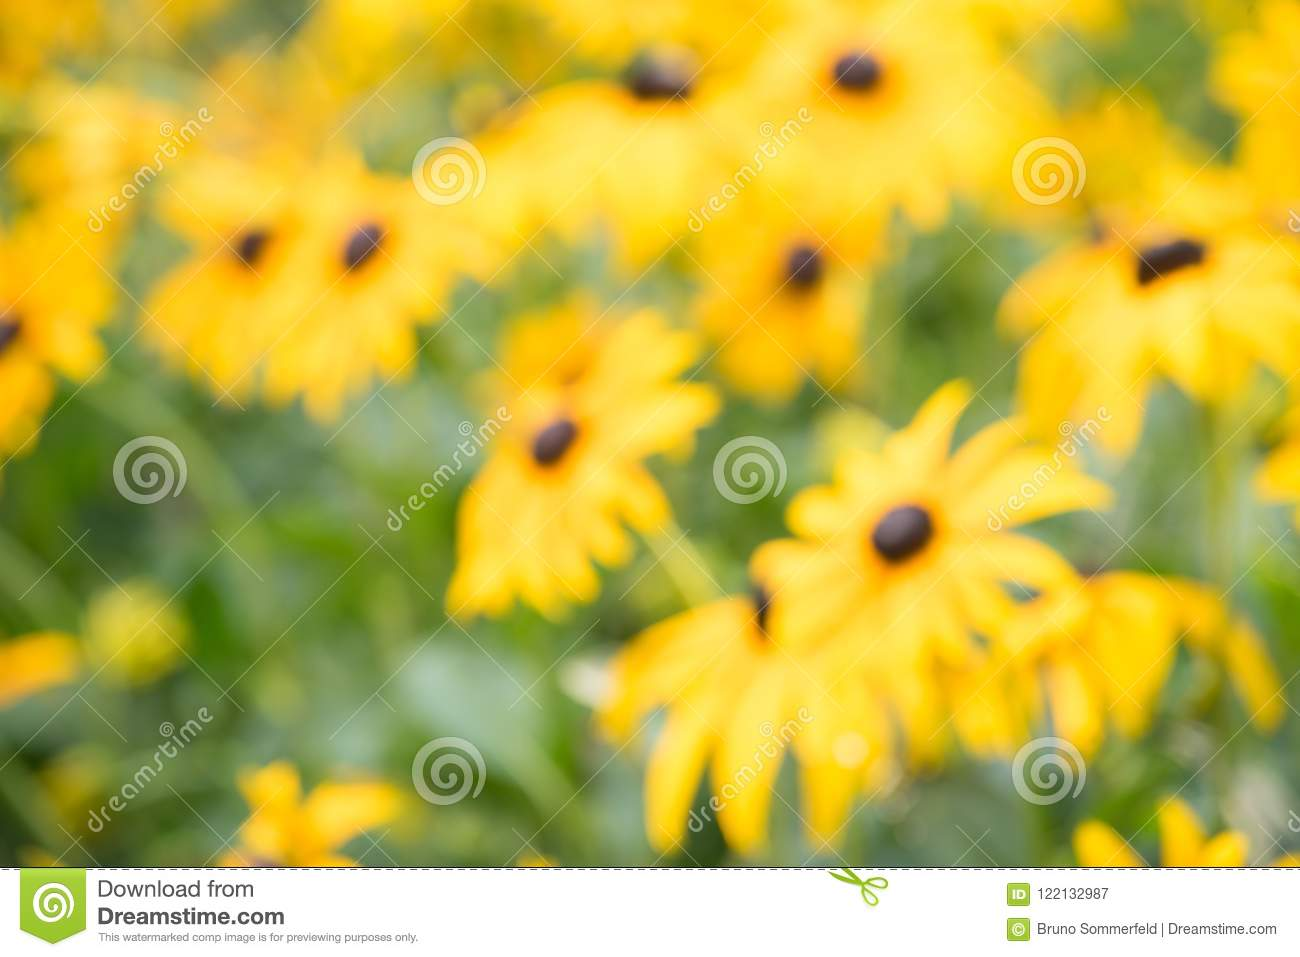 Endless Green Field Grow Fragrant Yellow Flowers Stock Image Image